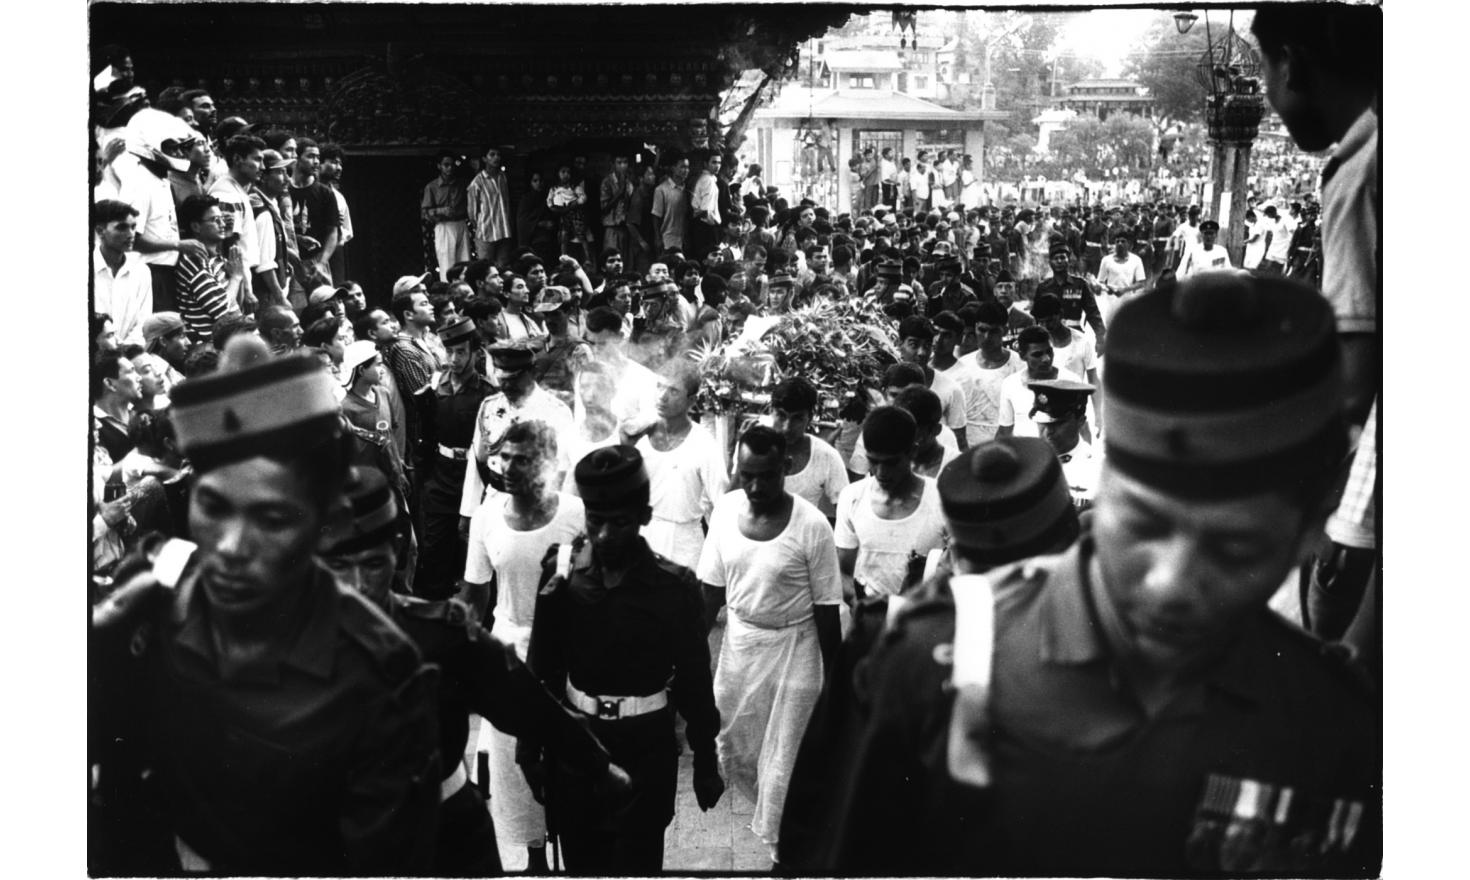 Funeral procession of the bodies of King Birendra and his wife around the city of Kathmandu, 2d of June 2001